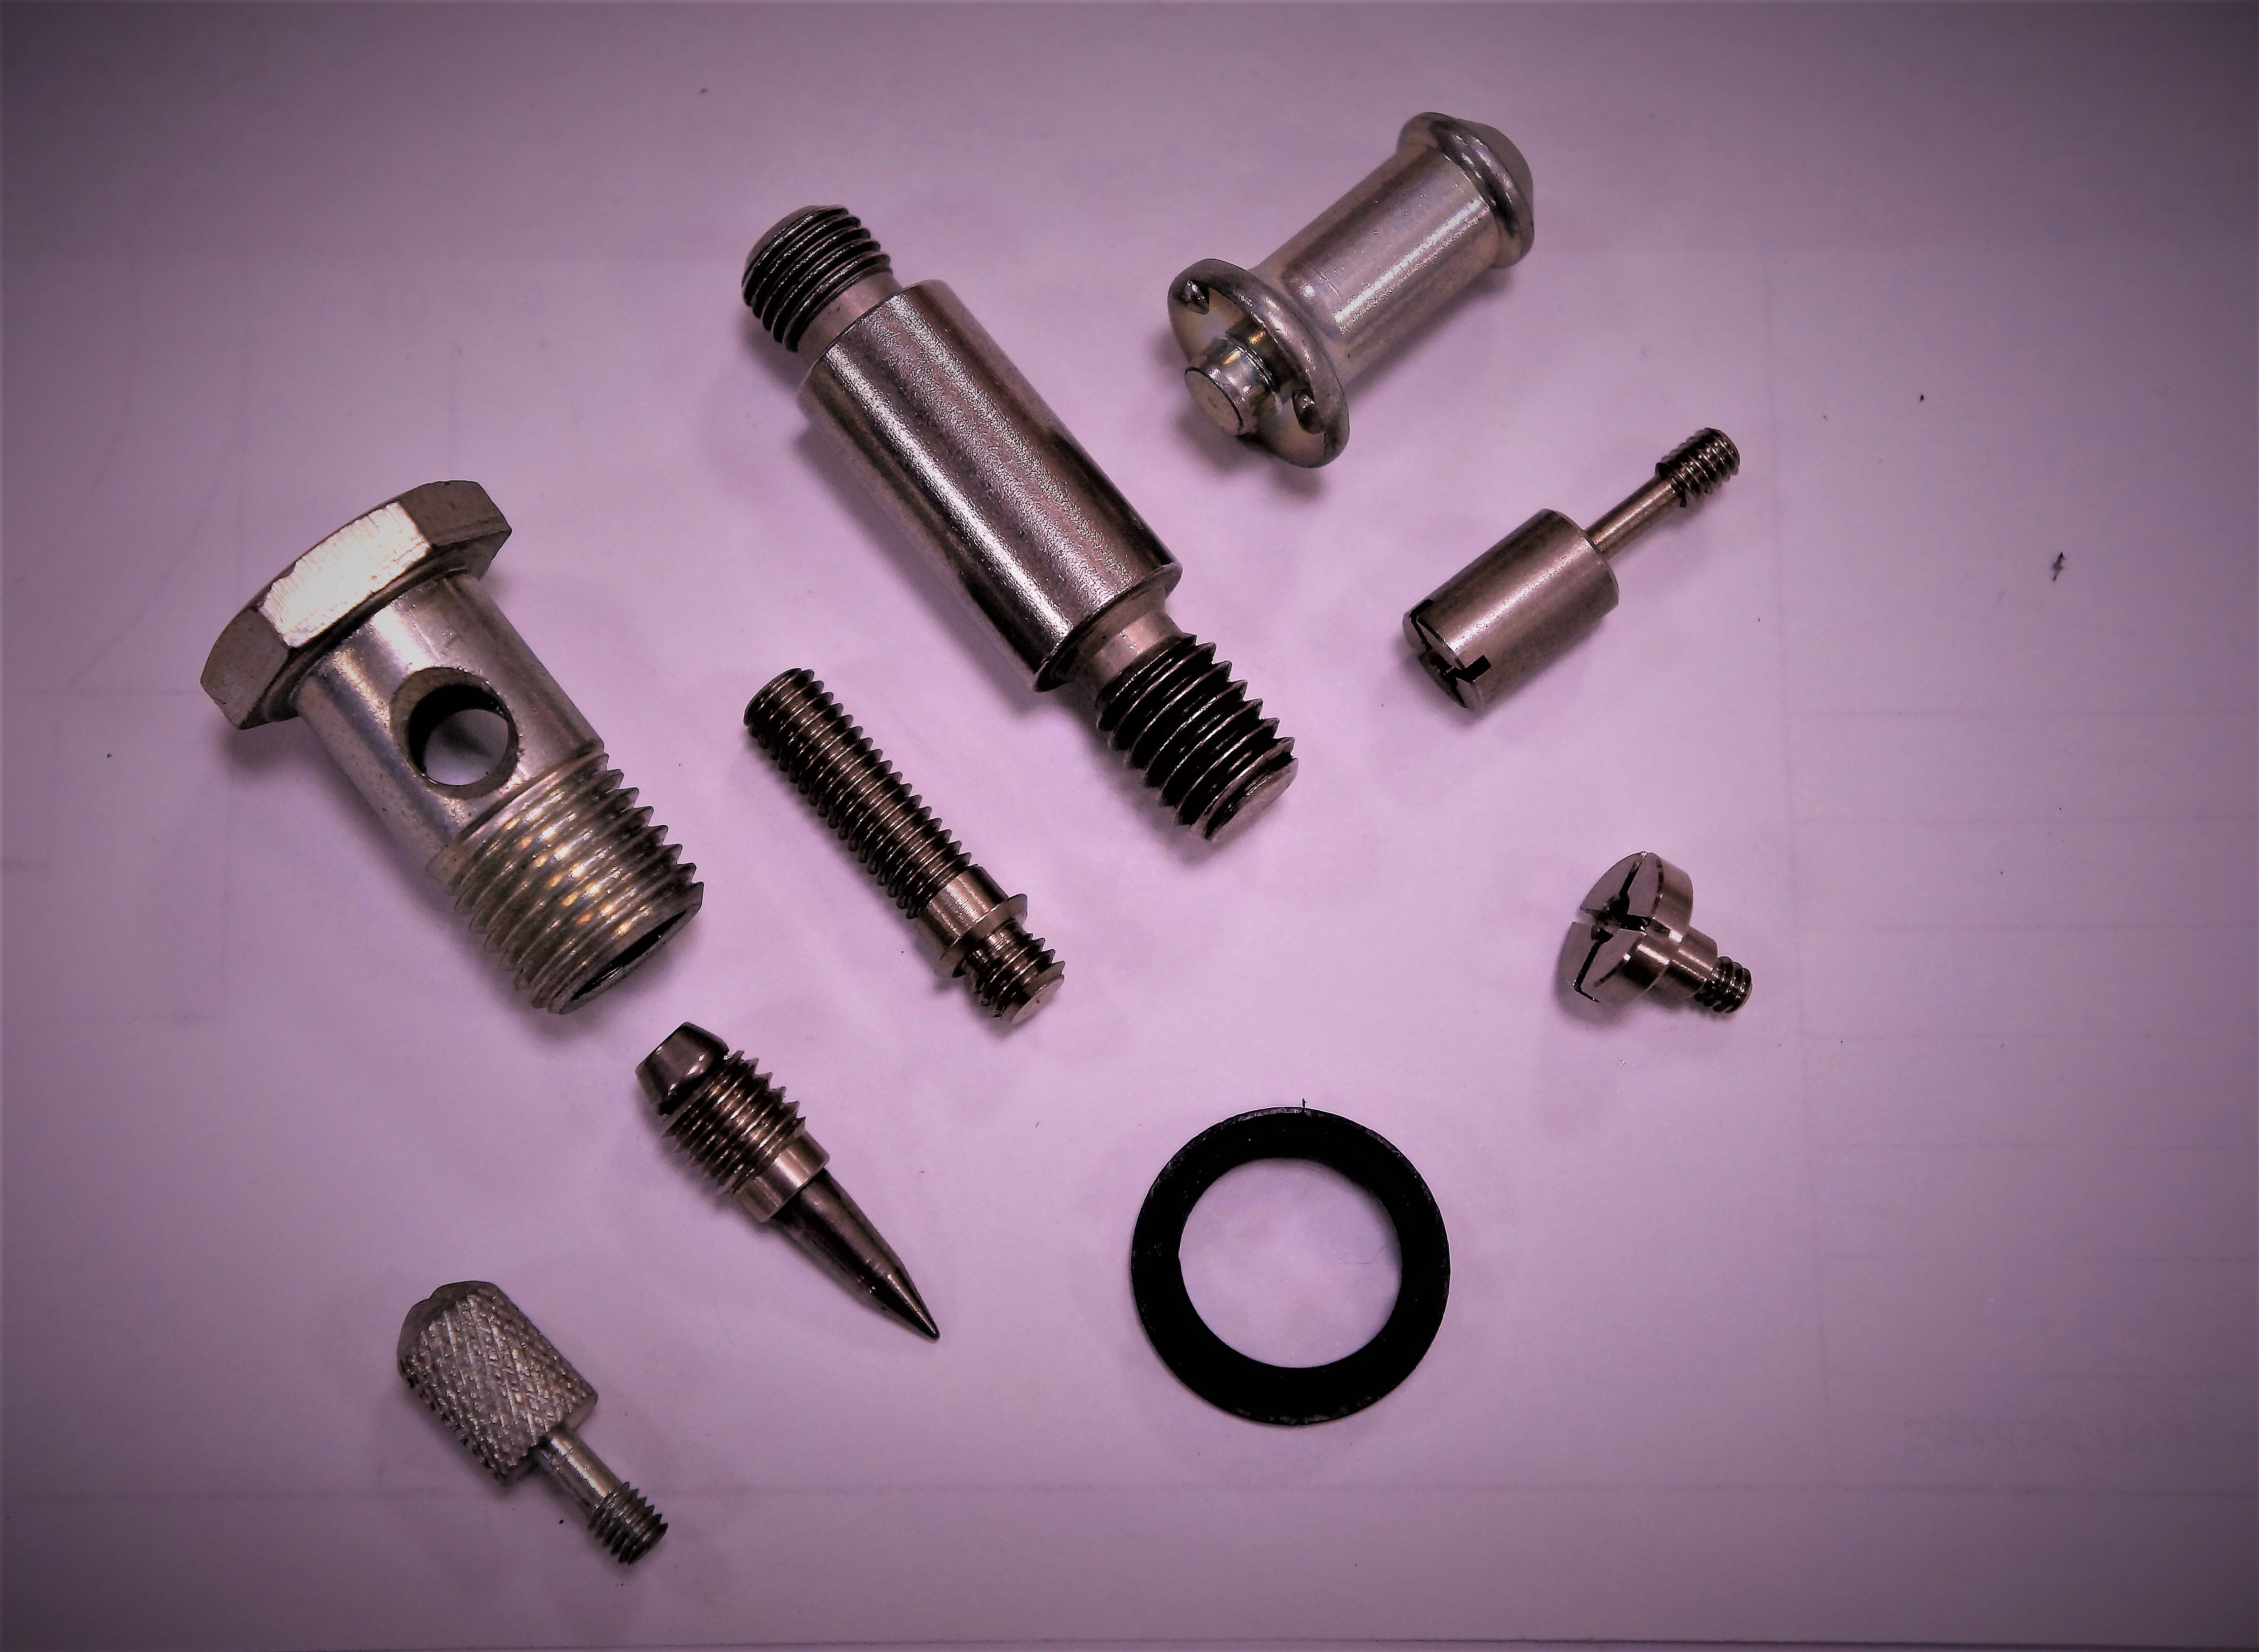 Truck / Trailer / Heavy Duty Special Screw for Vehicle Fastener made by Sunny Screw Industry 三能螺栓工業股份有限公司 - MatchSupplier.com